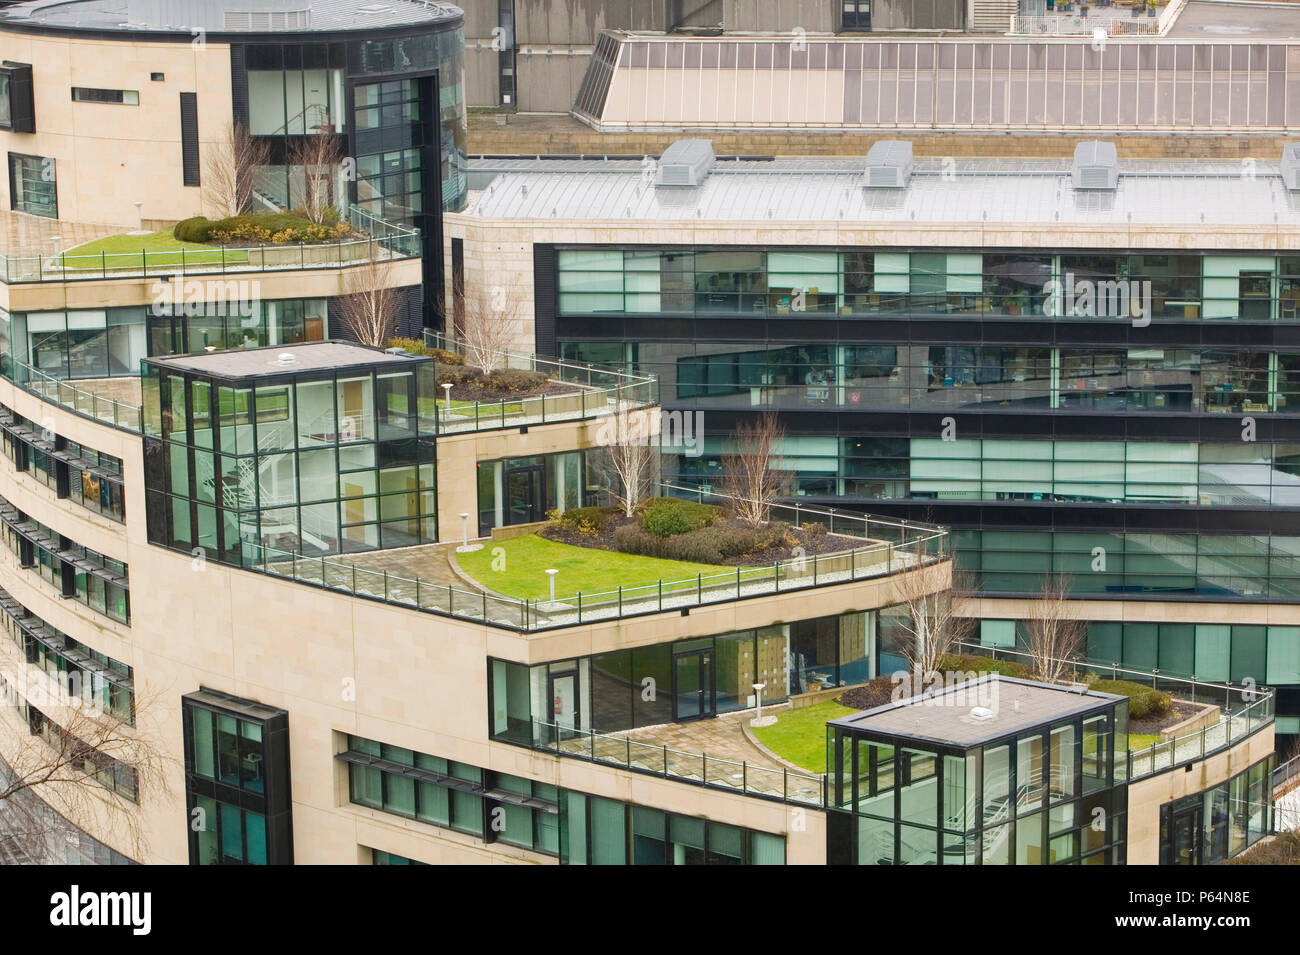 An architect designed modern building with a grass roof just off Princes Street in Edinburgh Scotland UK. Incorporating a green roof on buildings can  - Stock Image